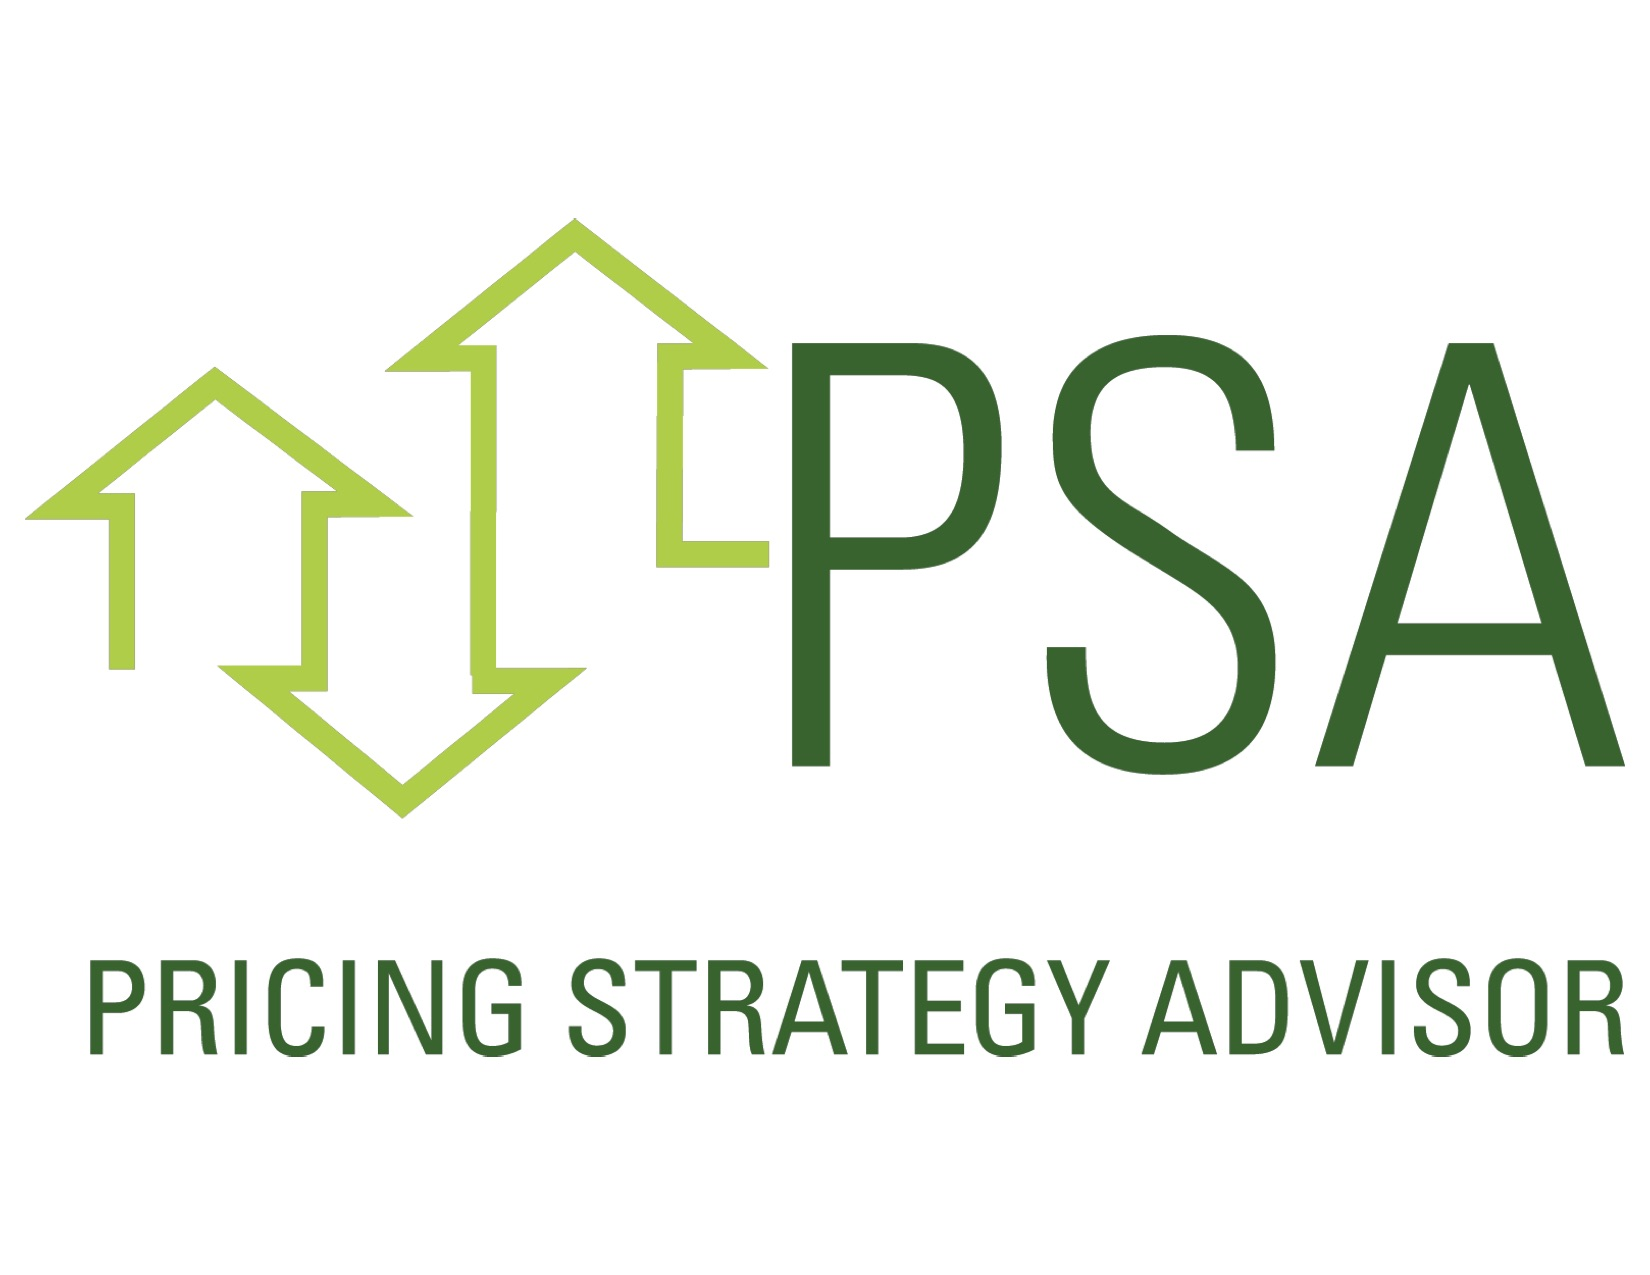 Pricing Strategy Advisor